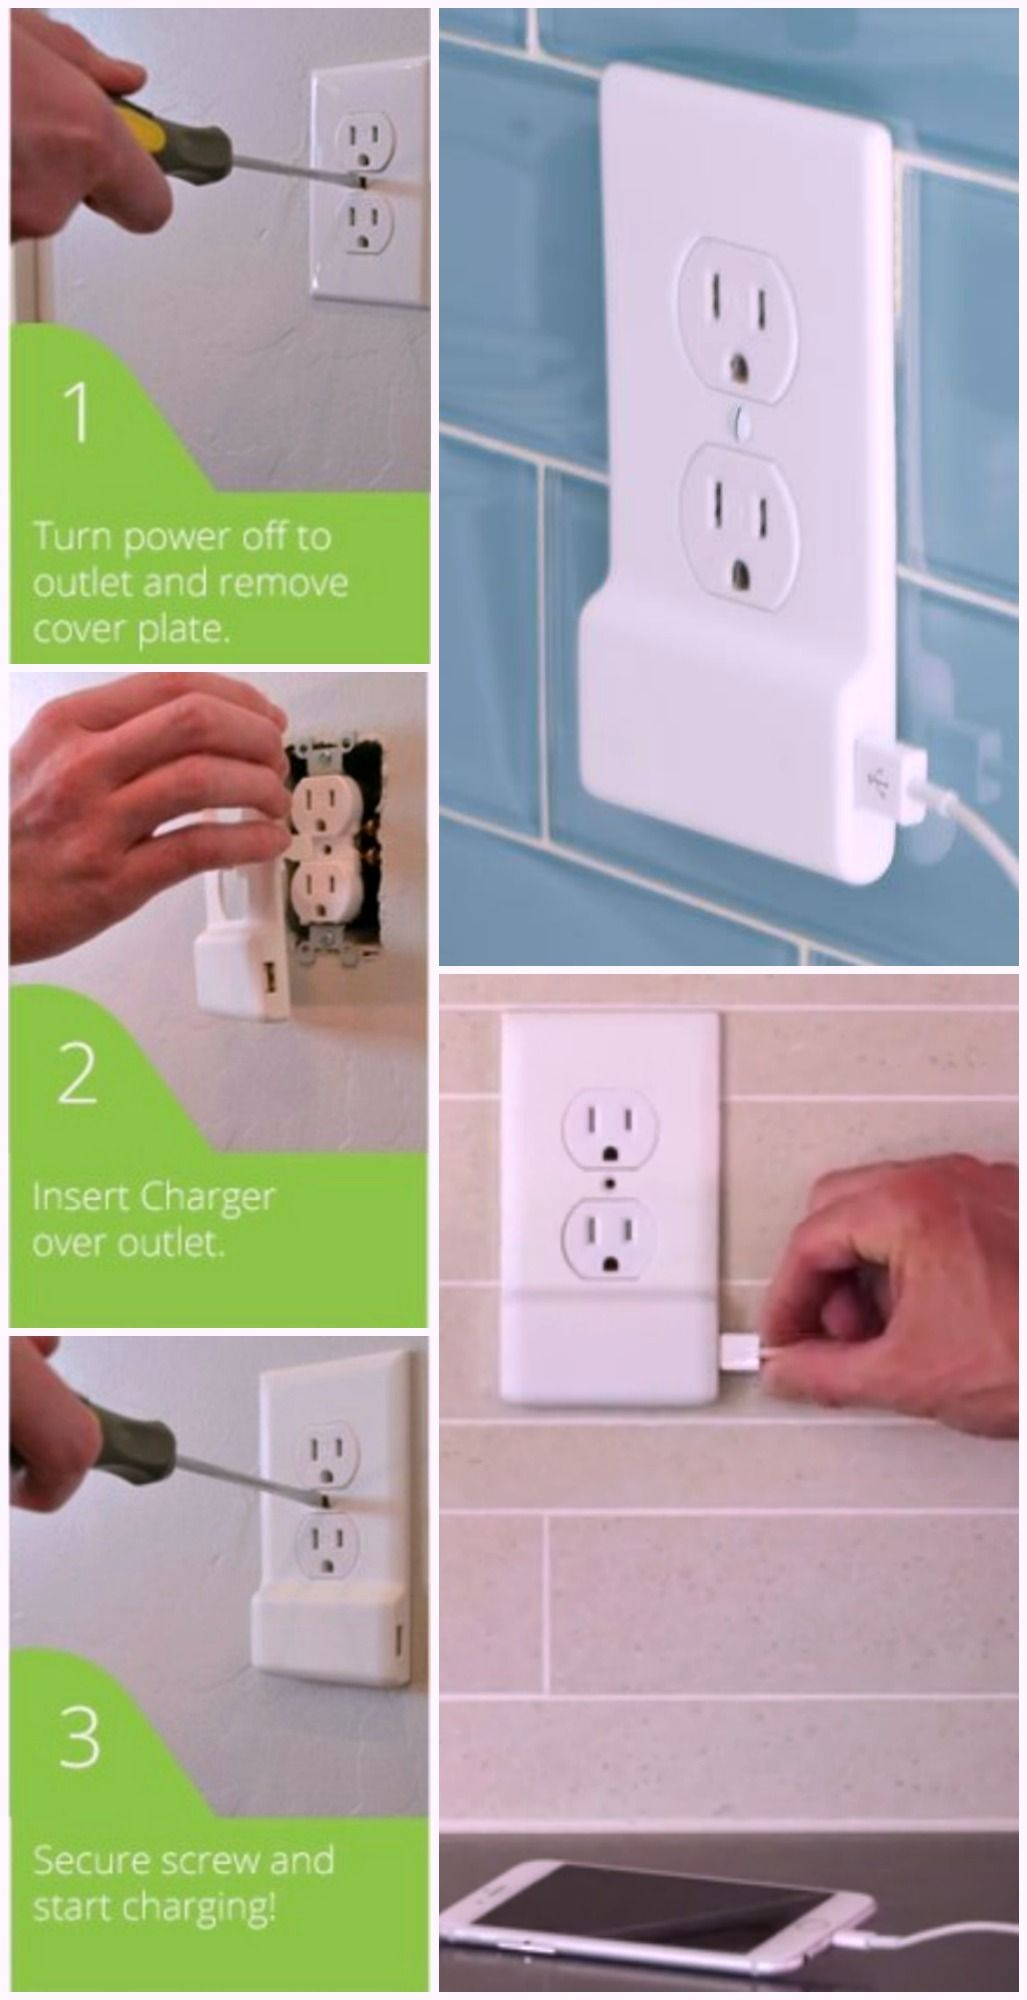 SnapPower AC Outlet Cover Plate #energyefficiency